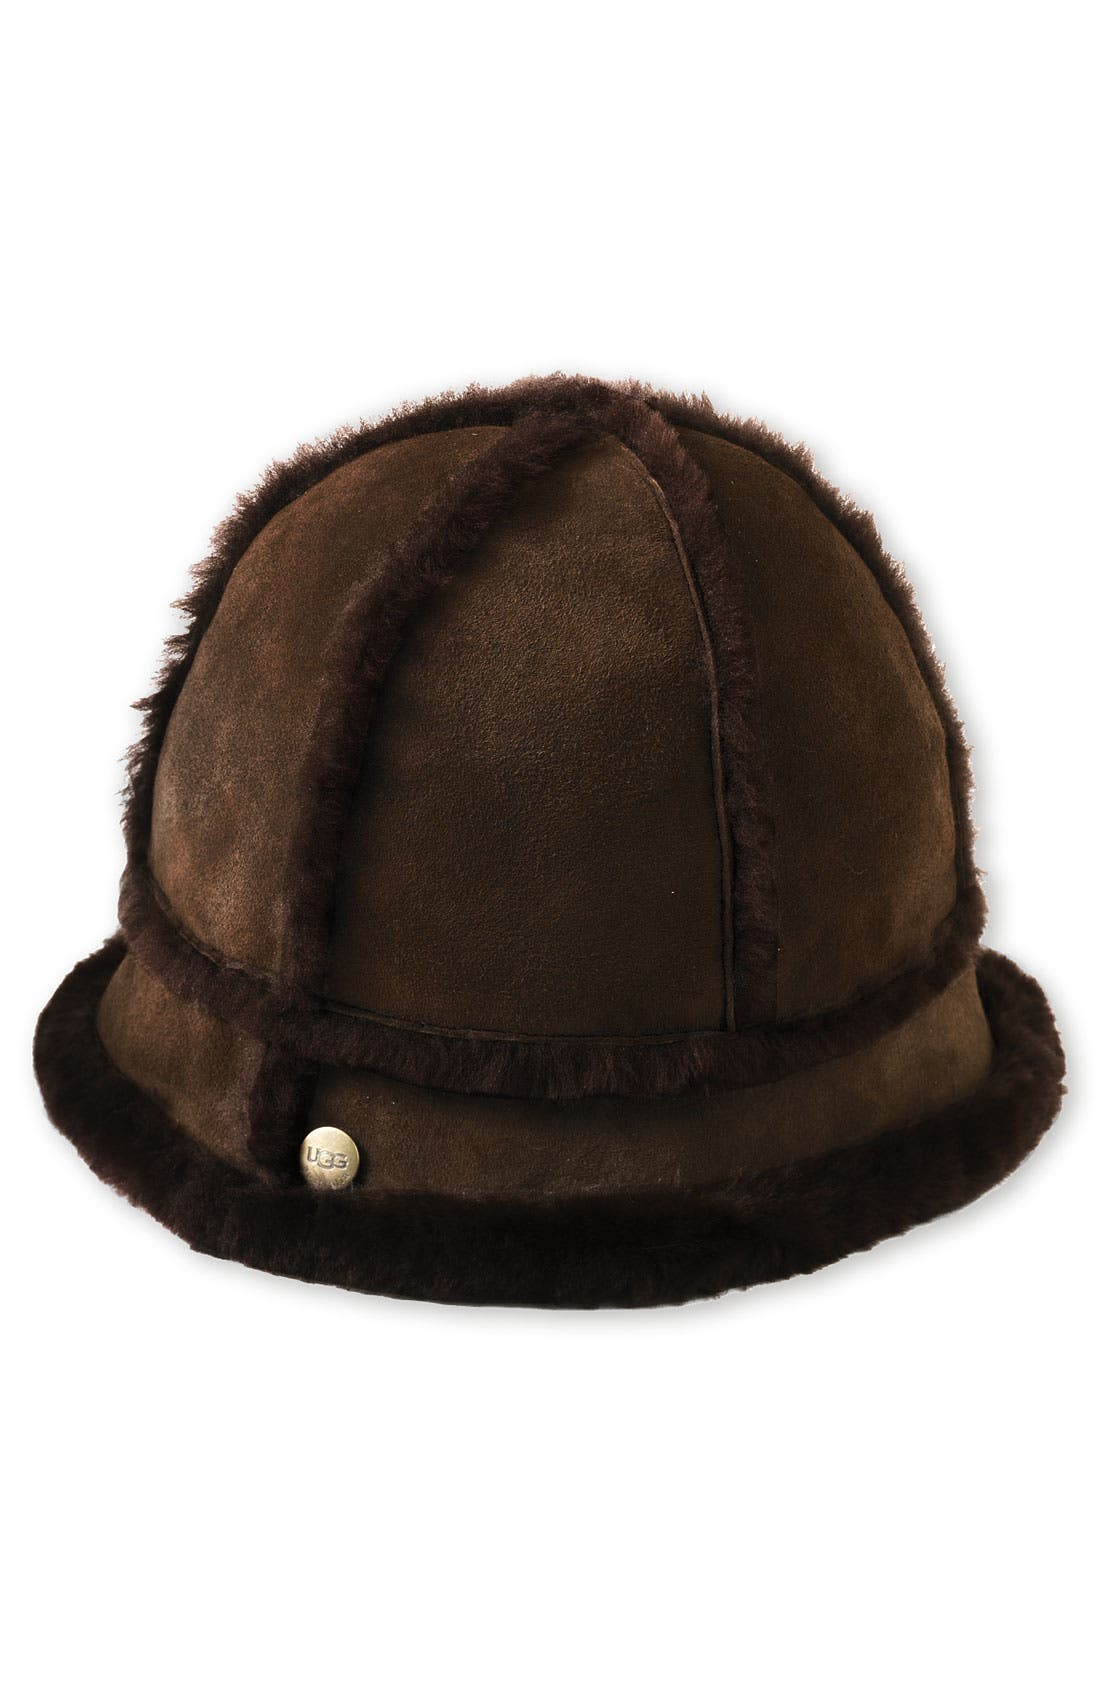 Alternate Image 1 Selected - UGG® Australia Shearling Bucket Hat